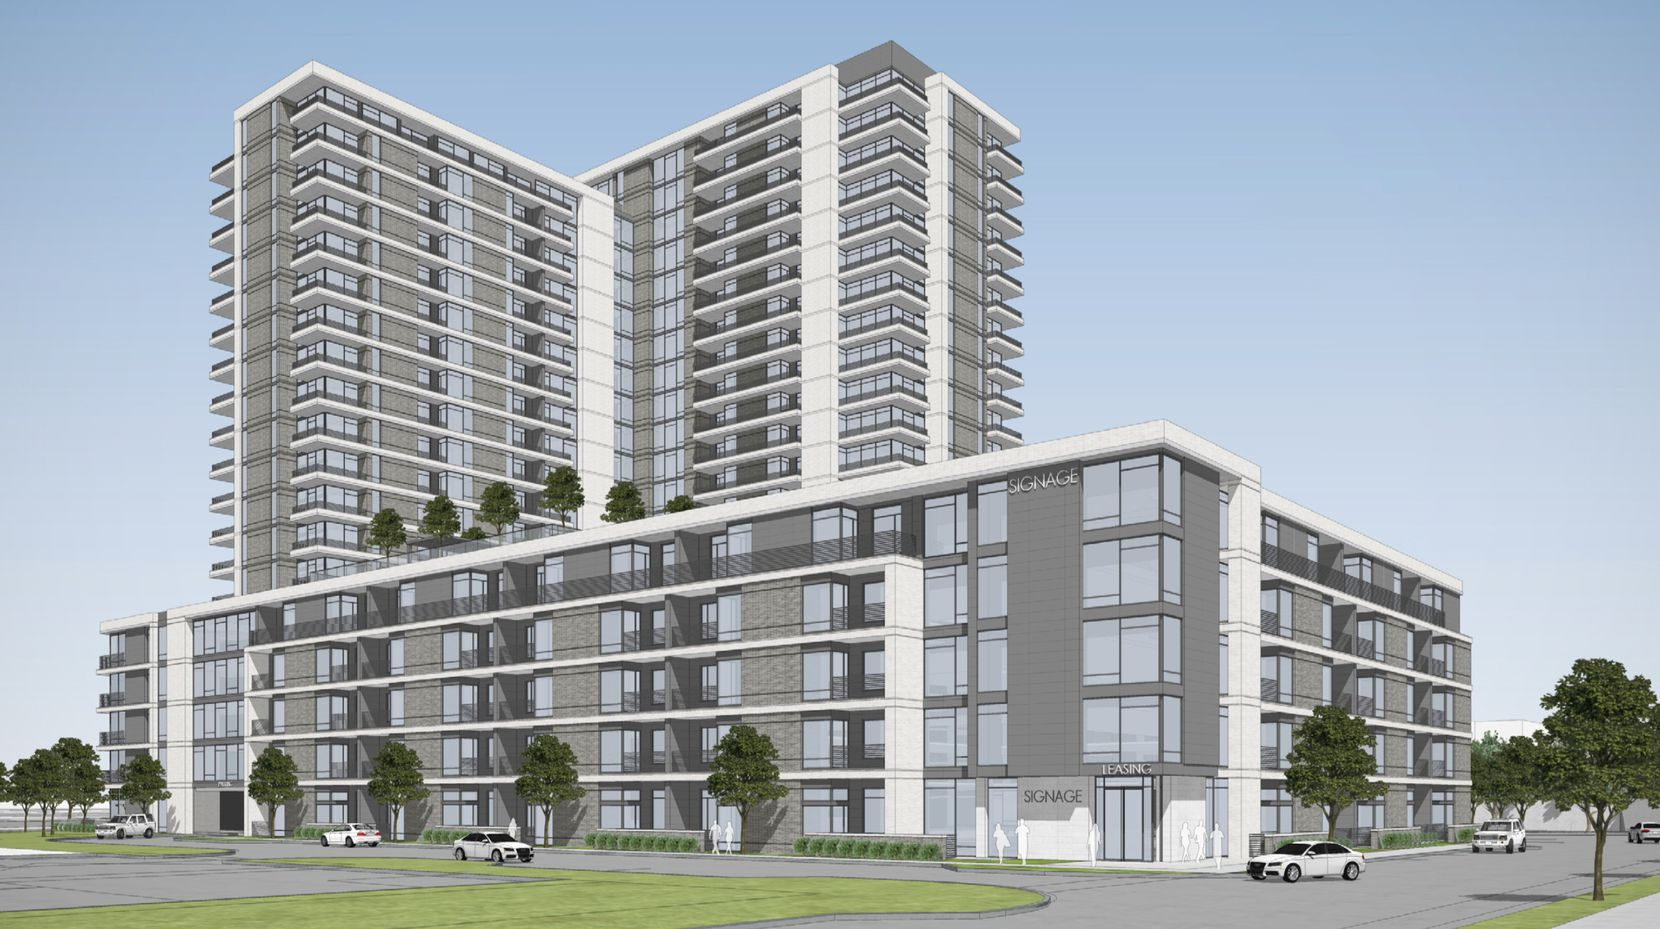 The project would include 481 rental units.